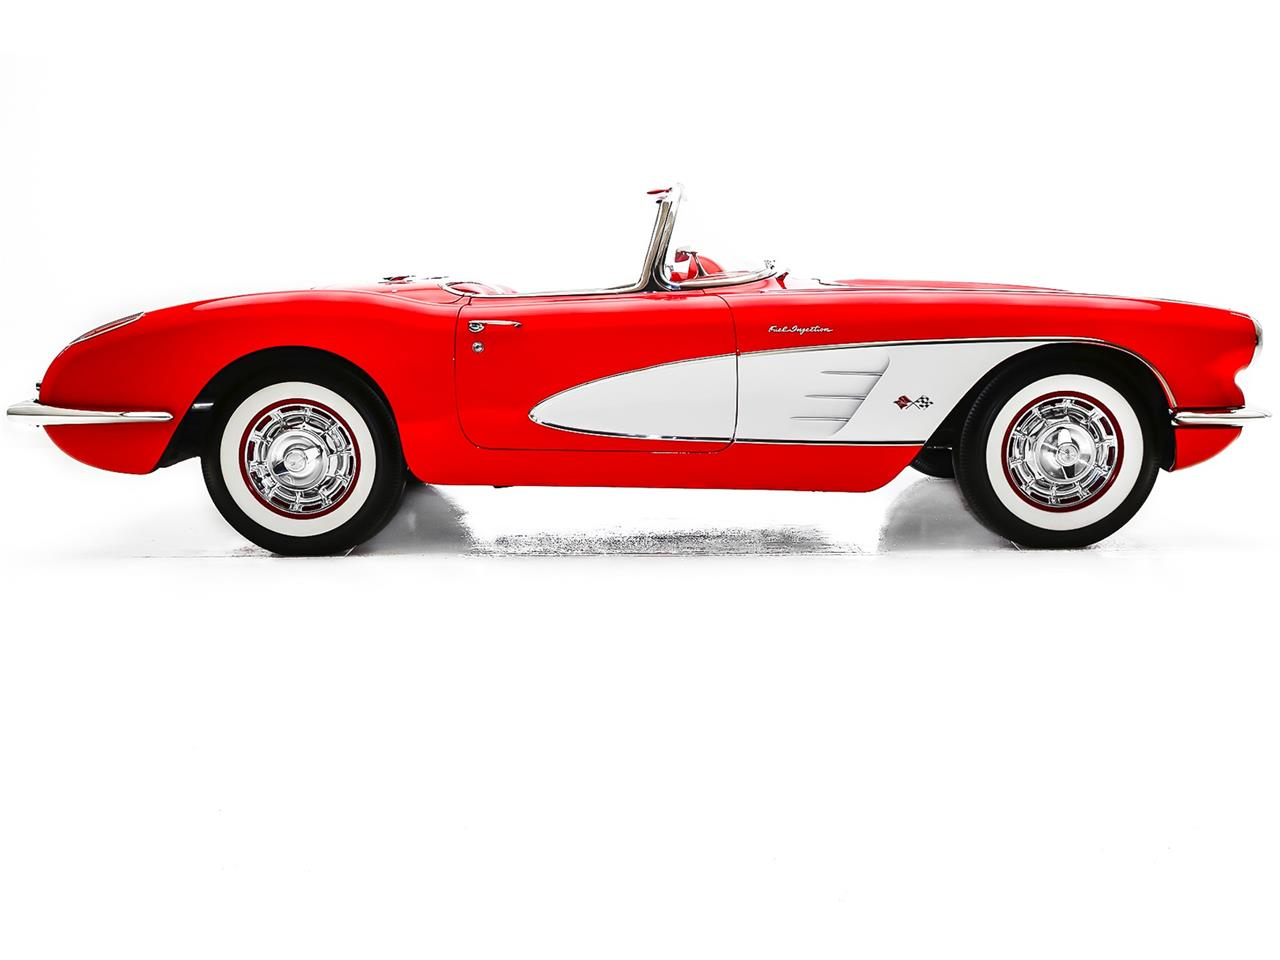 Large Picture of 1959 Chevrolet Corvette located in Des Moines Iowa - $129,900.00 - LFJS